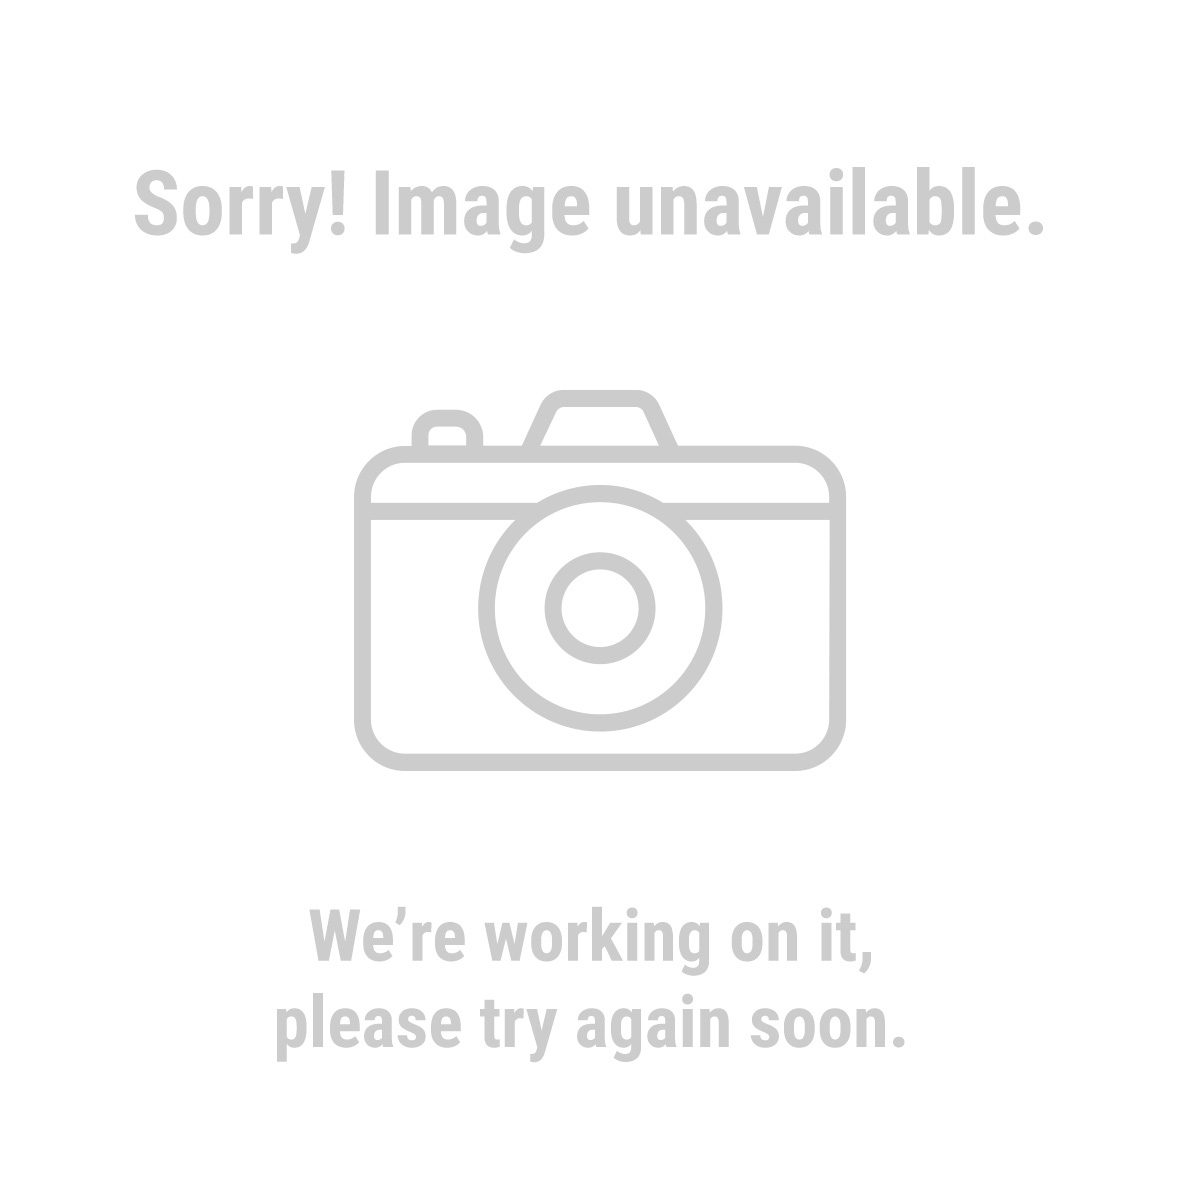 Pittsburgh® Automotive 62496 1.5 Ton Compact Aluminum Racing Floor Jack with Rapid Pump®